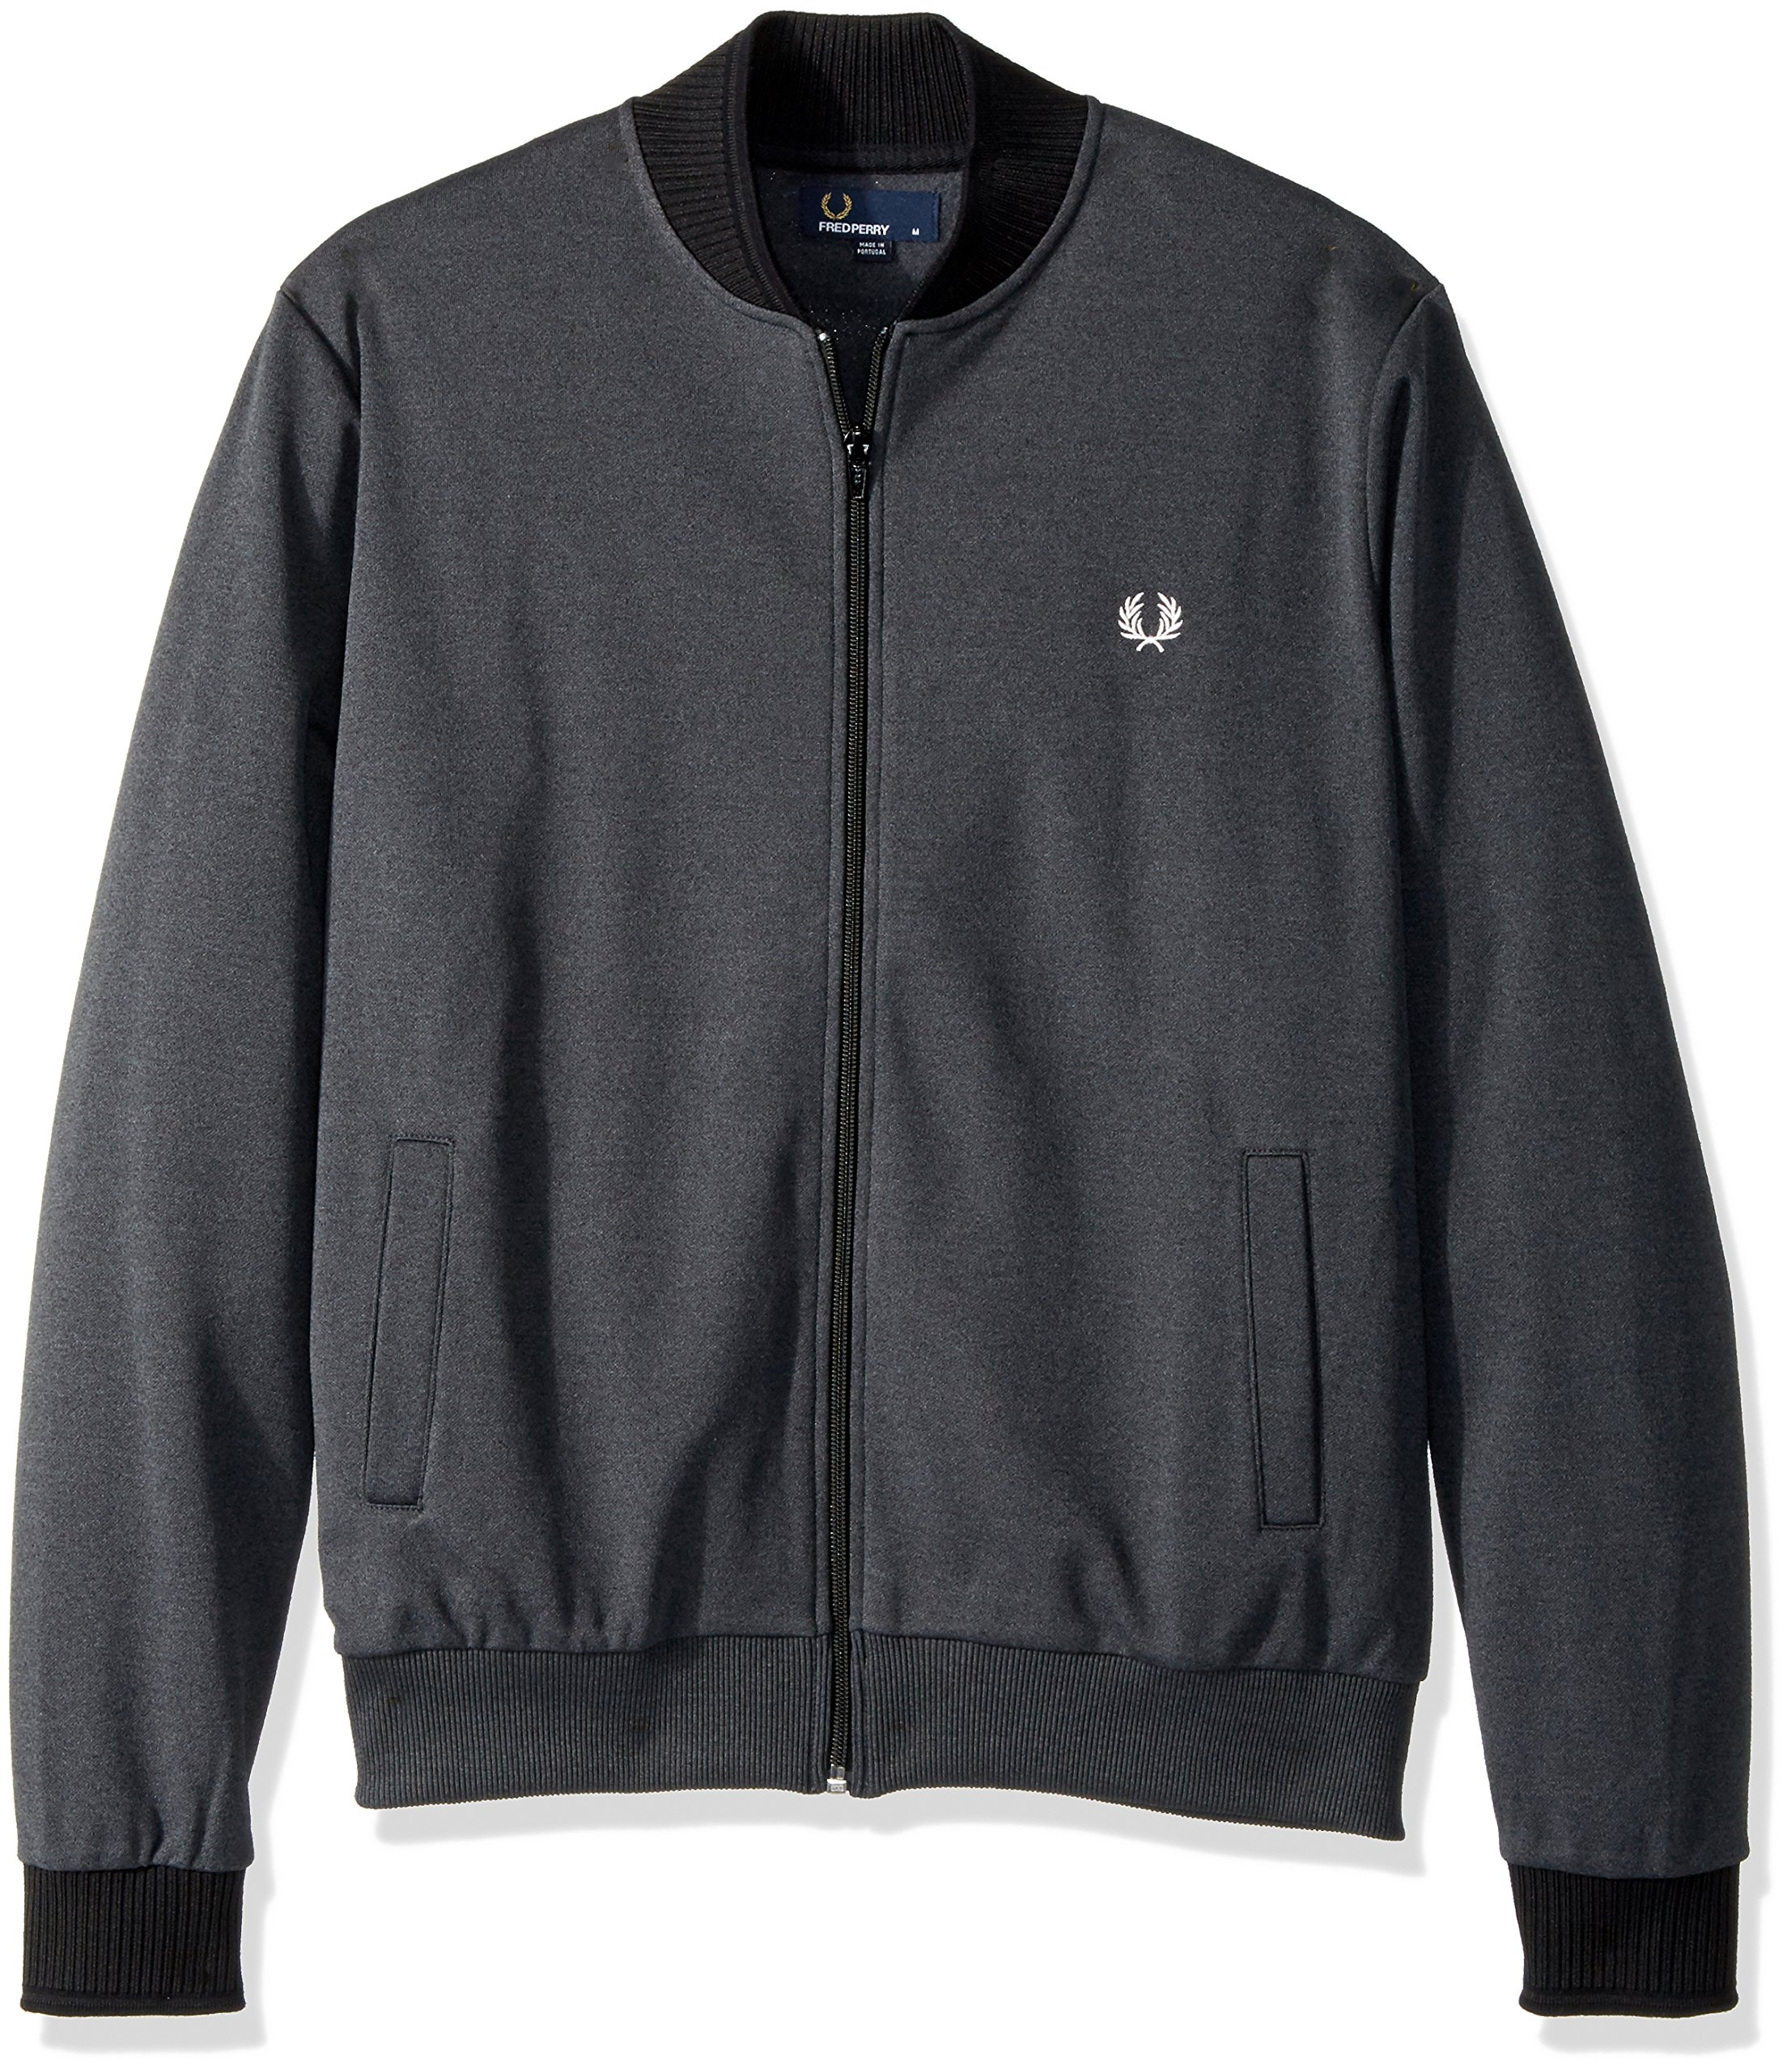 Fred Perry Men's Tipped Bomber Neck Track JKT, Charcoal Sol Mar, X-Large by Fred Perry